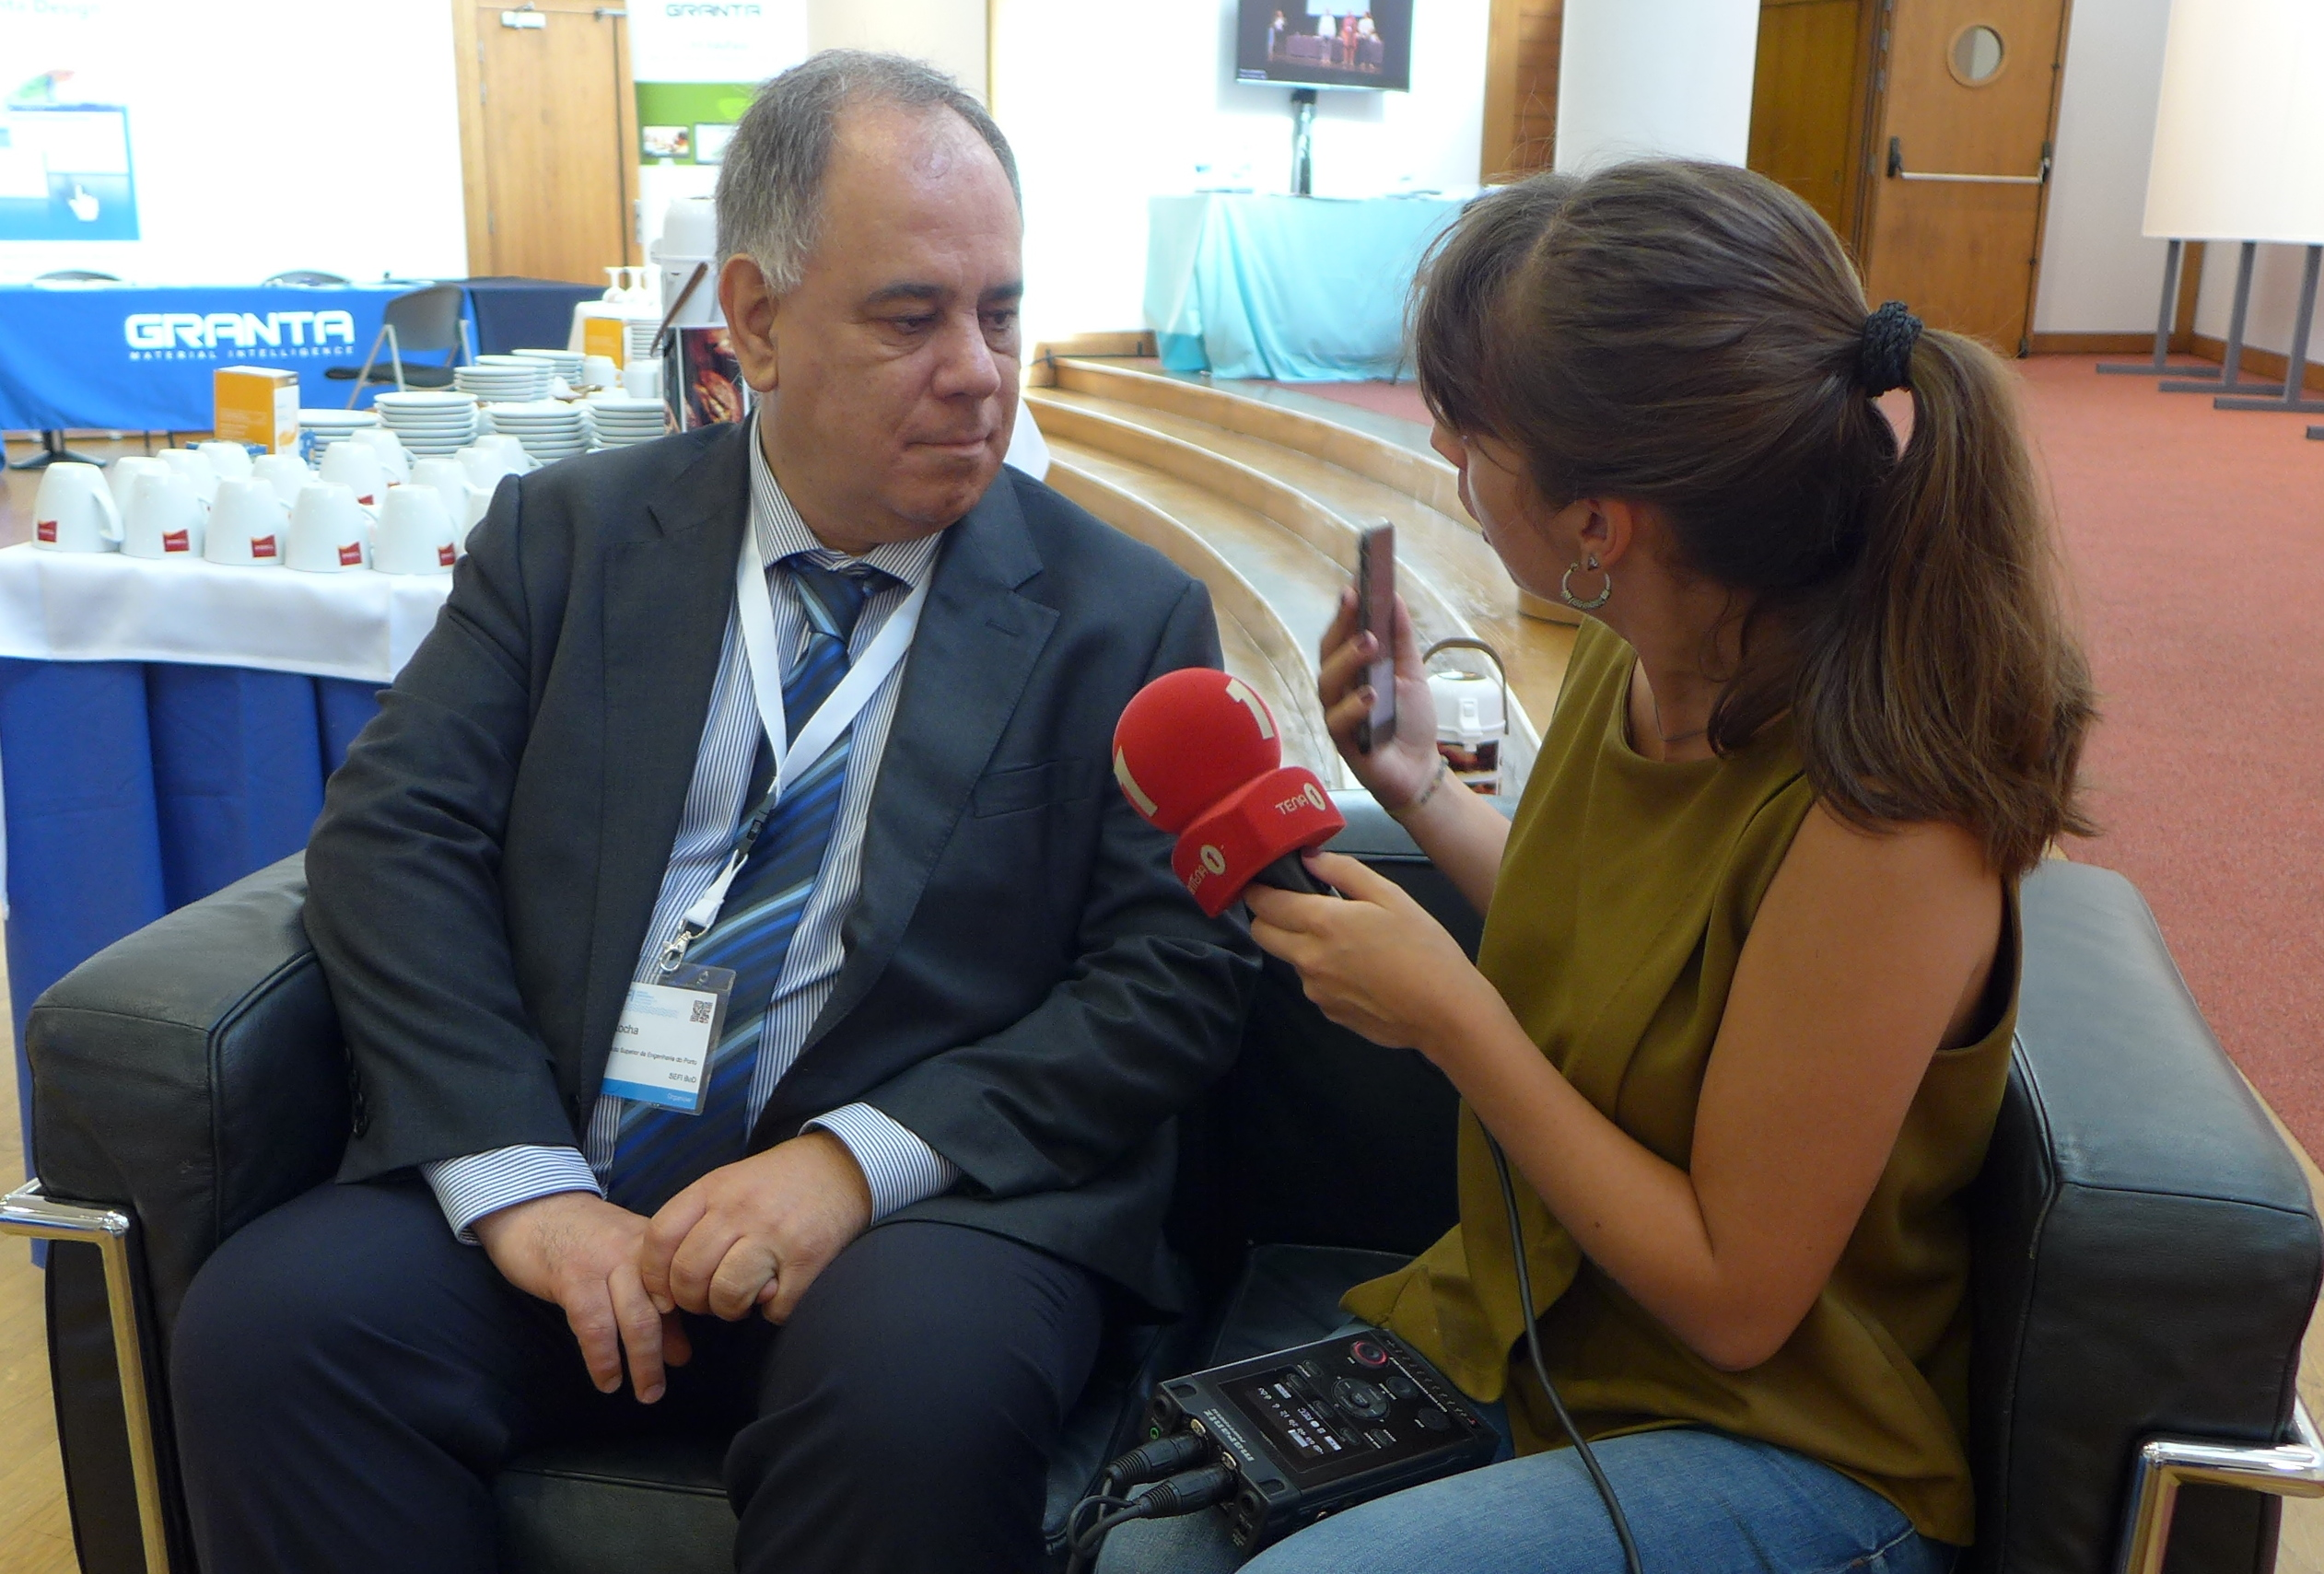 Prof Rocha, The Conference Organiser, Giving An Interview